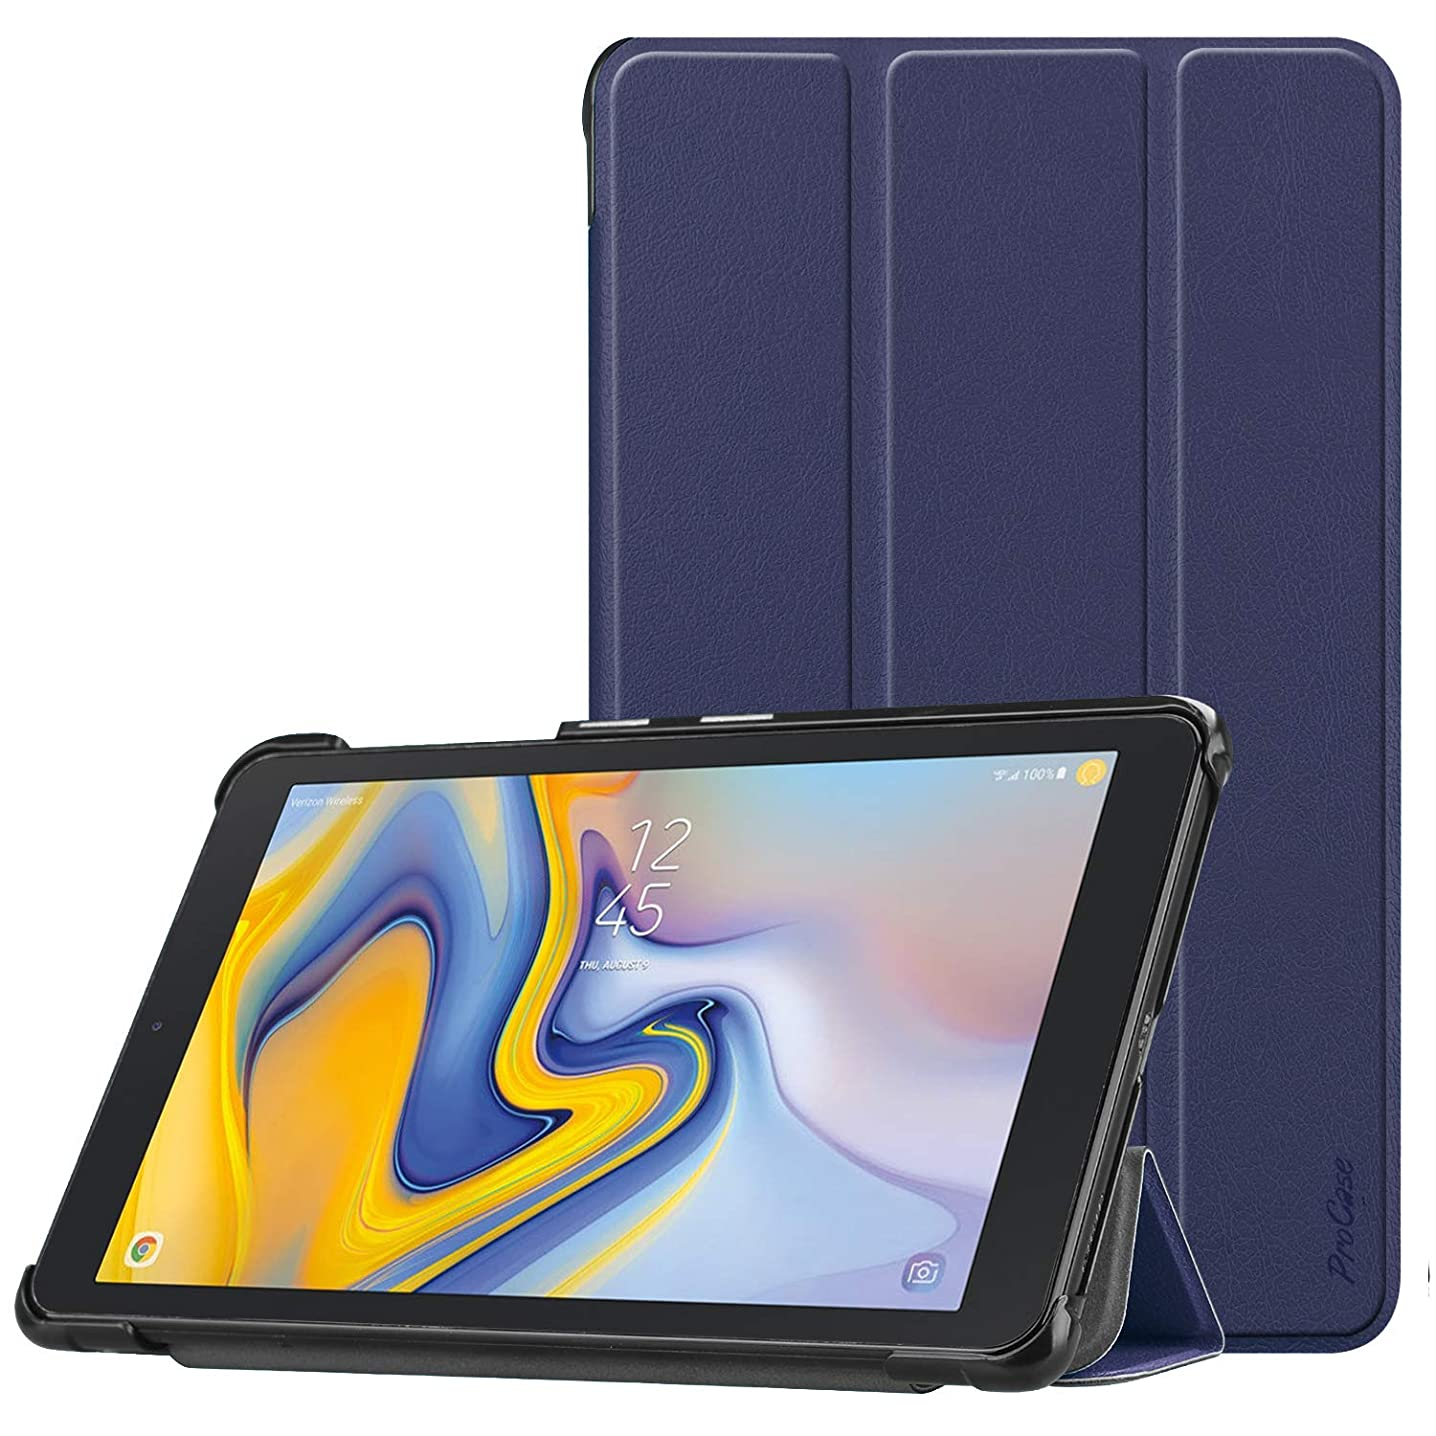 ProCase Verizon Sprint Galaxy Tab A 8.0 Case 2018 SM-T387, Slim Light Protective Cover Stand Hard Shell for Galaxy Tab A 8.0-Inch 4G LTE Tablet Sprint/Verizon/T-Mobile/AT&T 2018 Release -Navy